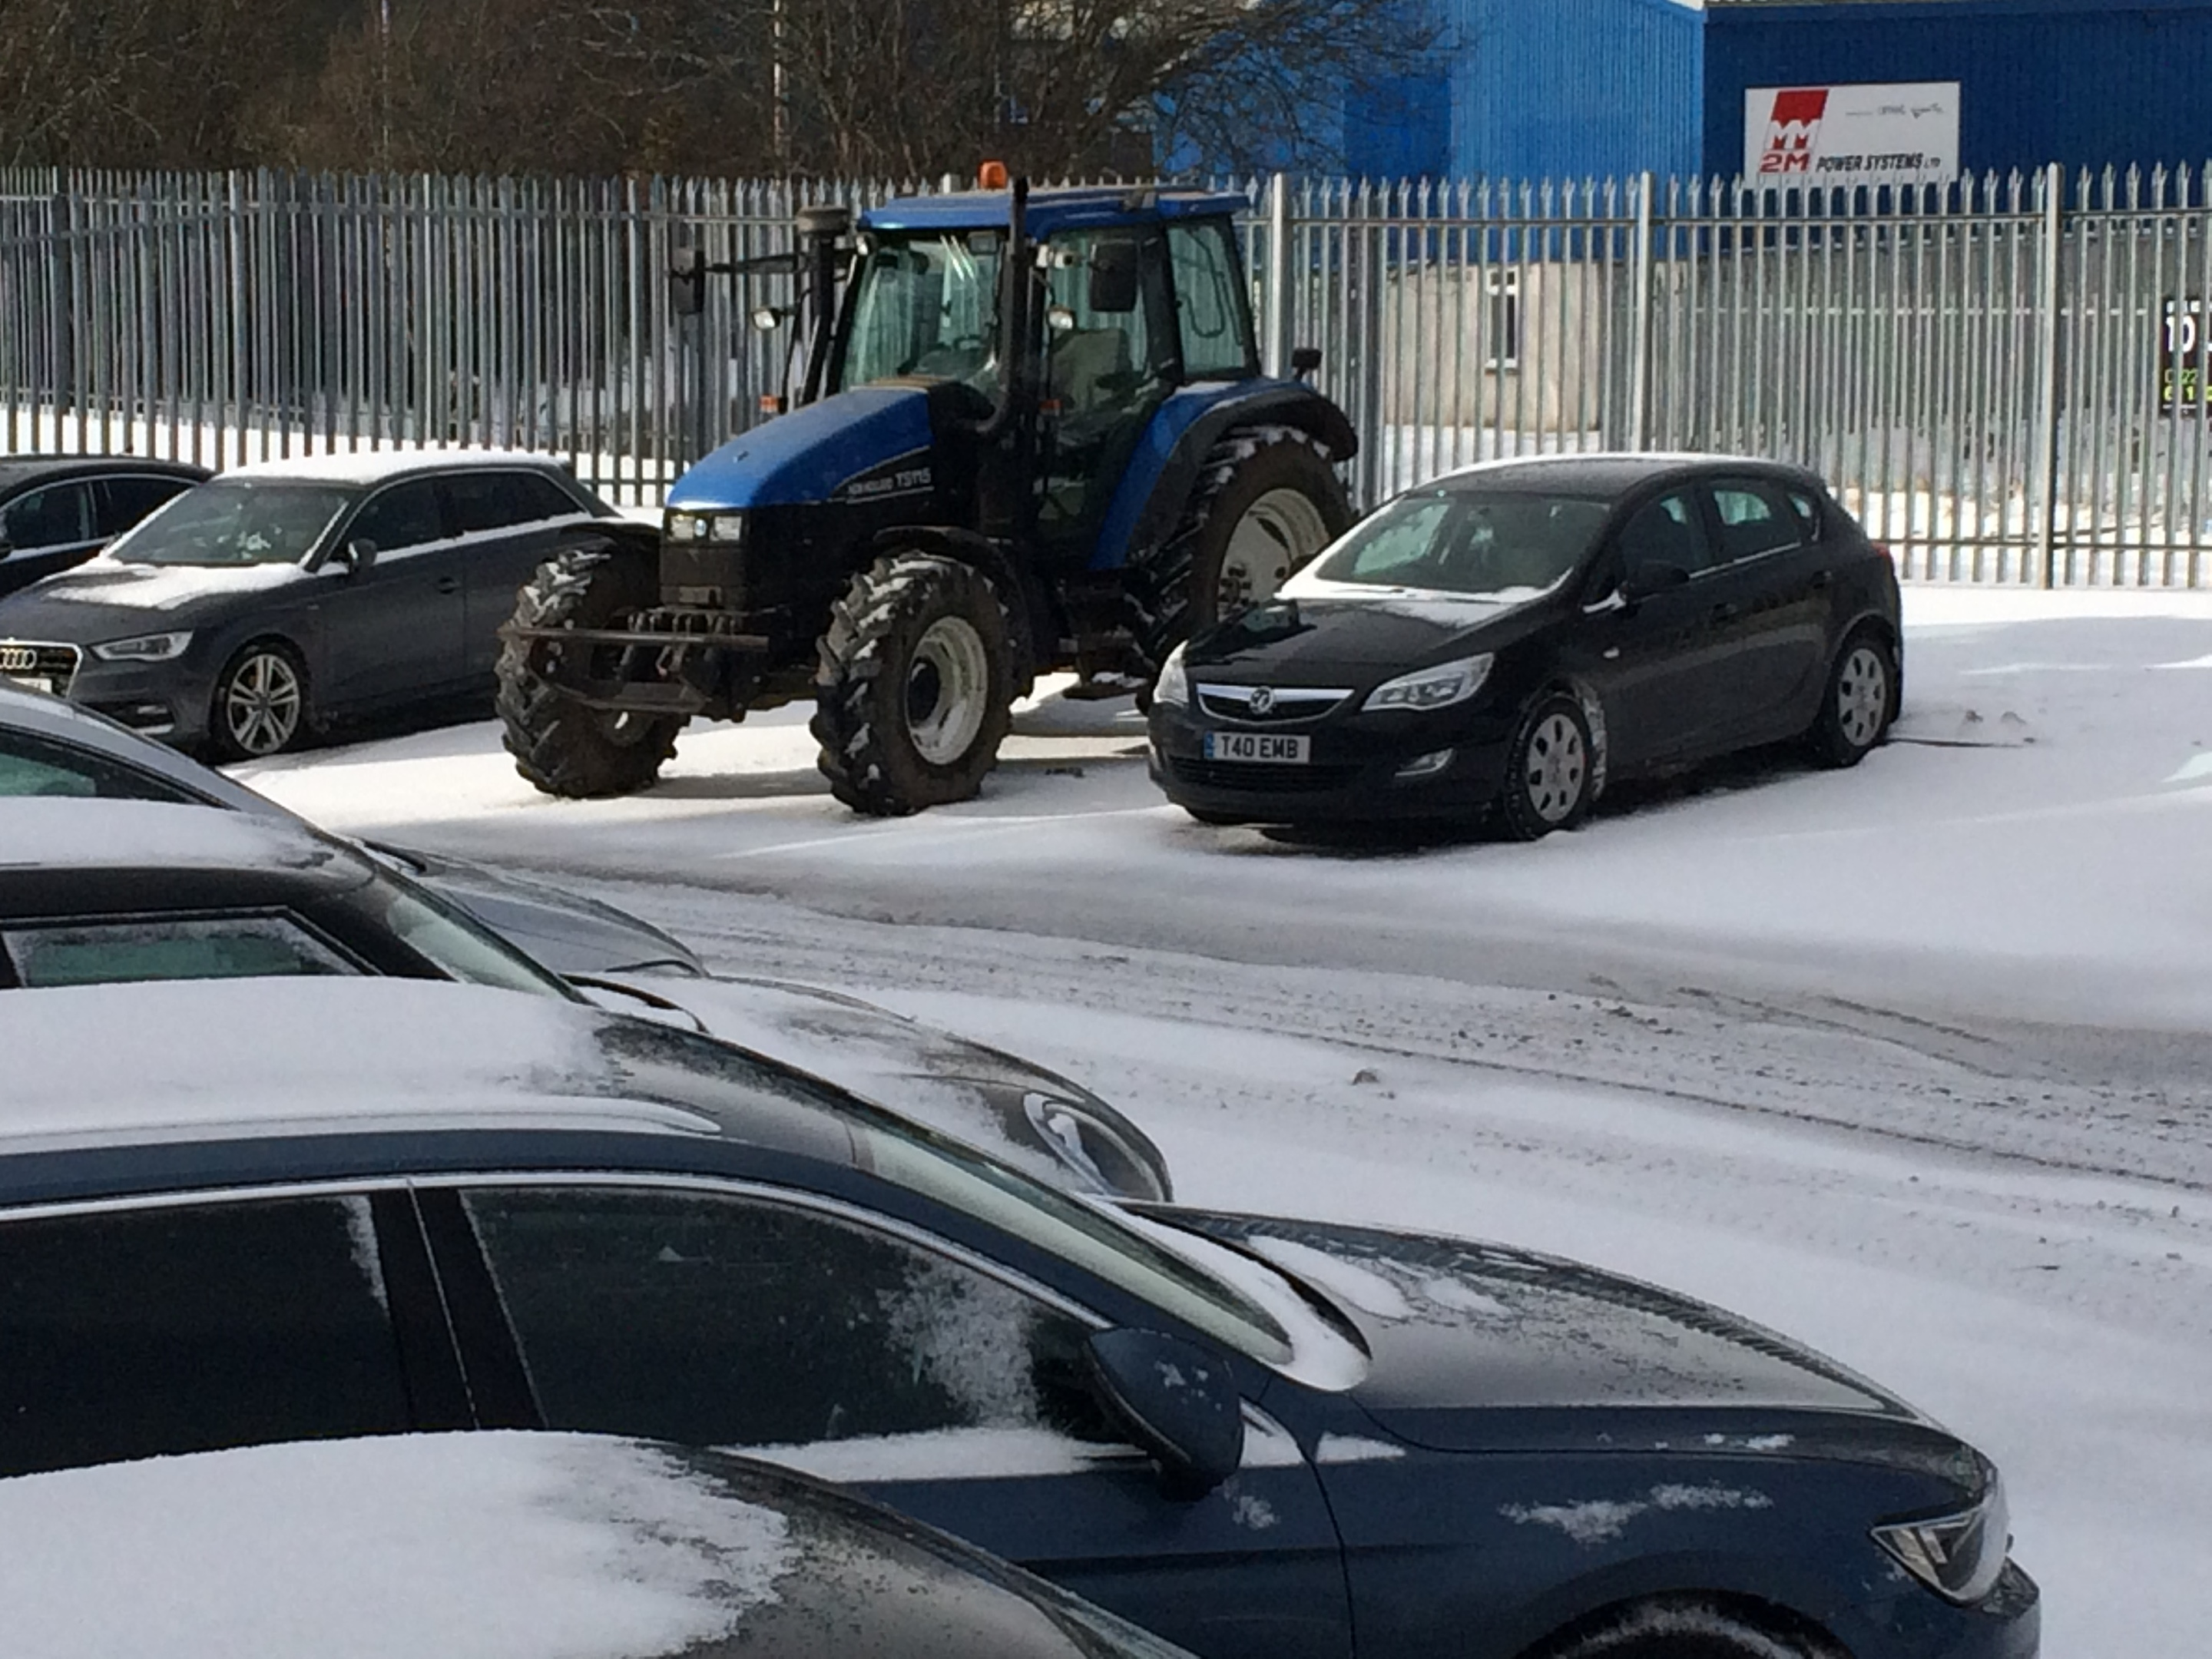 Sarah Phillips borrowed her dad's tractor to make it into work.